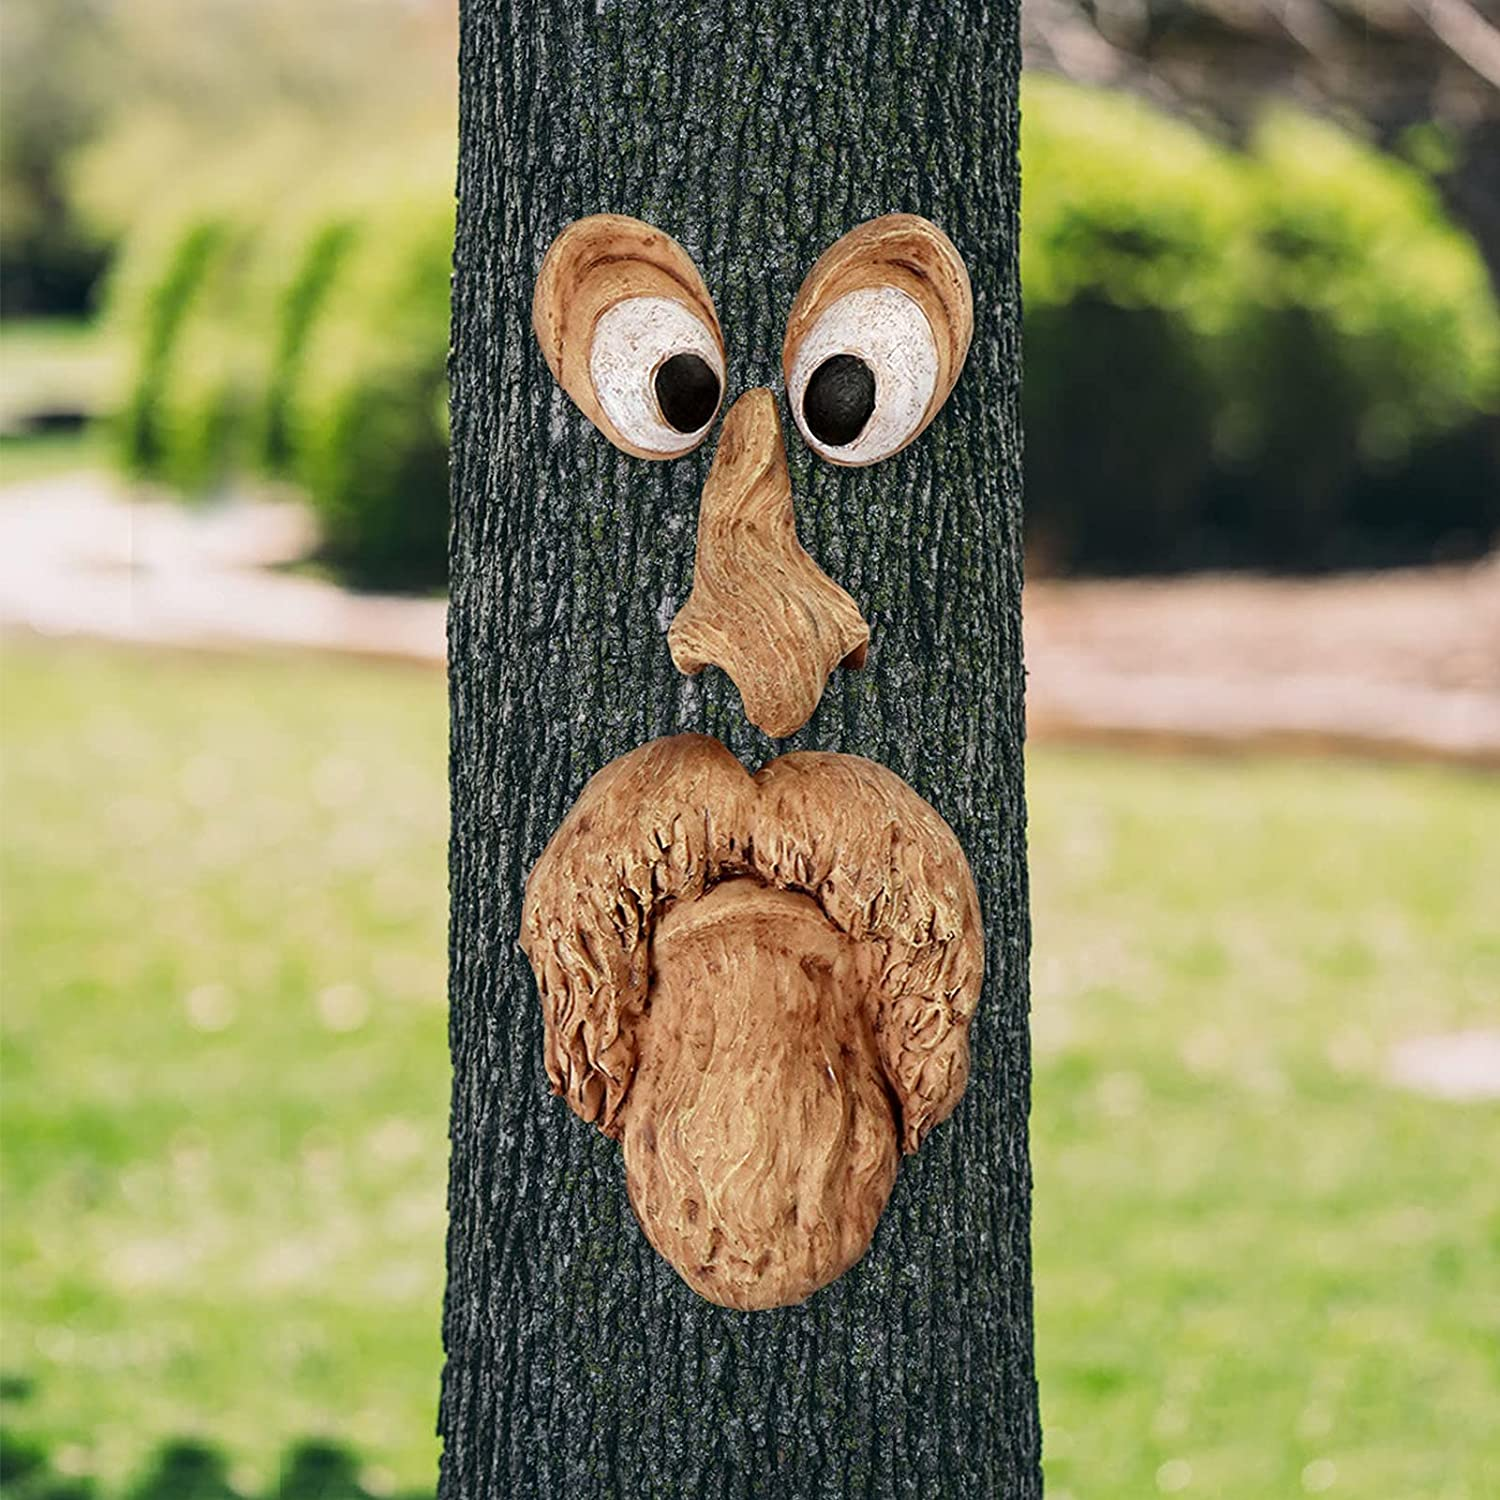 MINICAR Large Resin Tree Faces Decor Outdoor, Funny Old Man Tree Face Art Decorations Outside Garden Patio Whimsical Tree Hugger Sculpture Statues Creative Props(Style A)